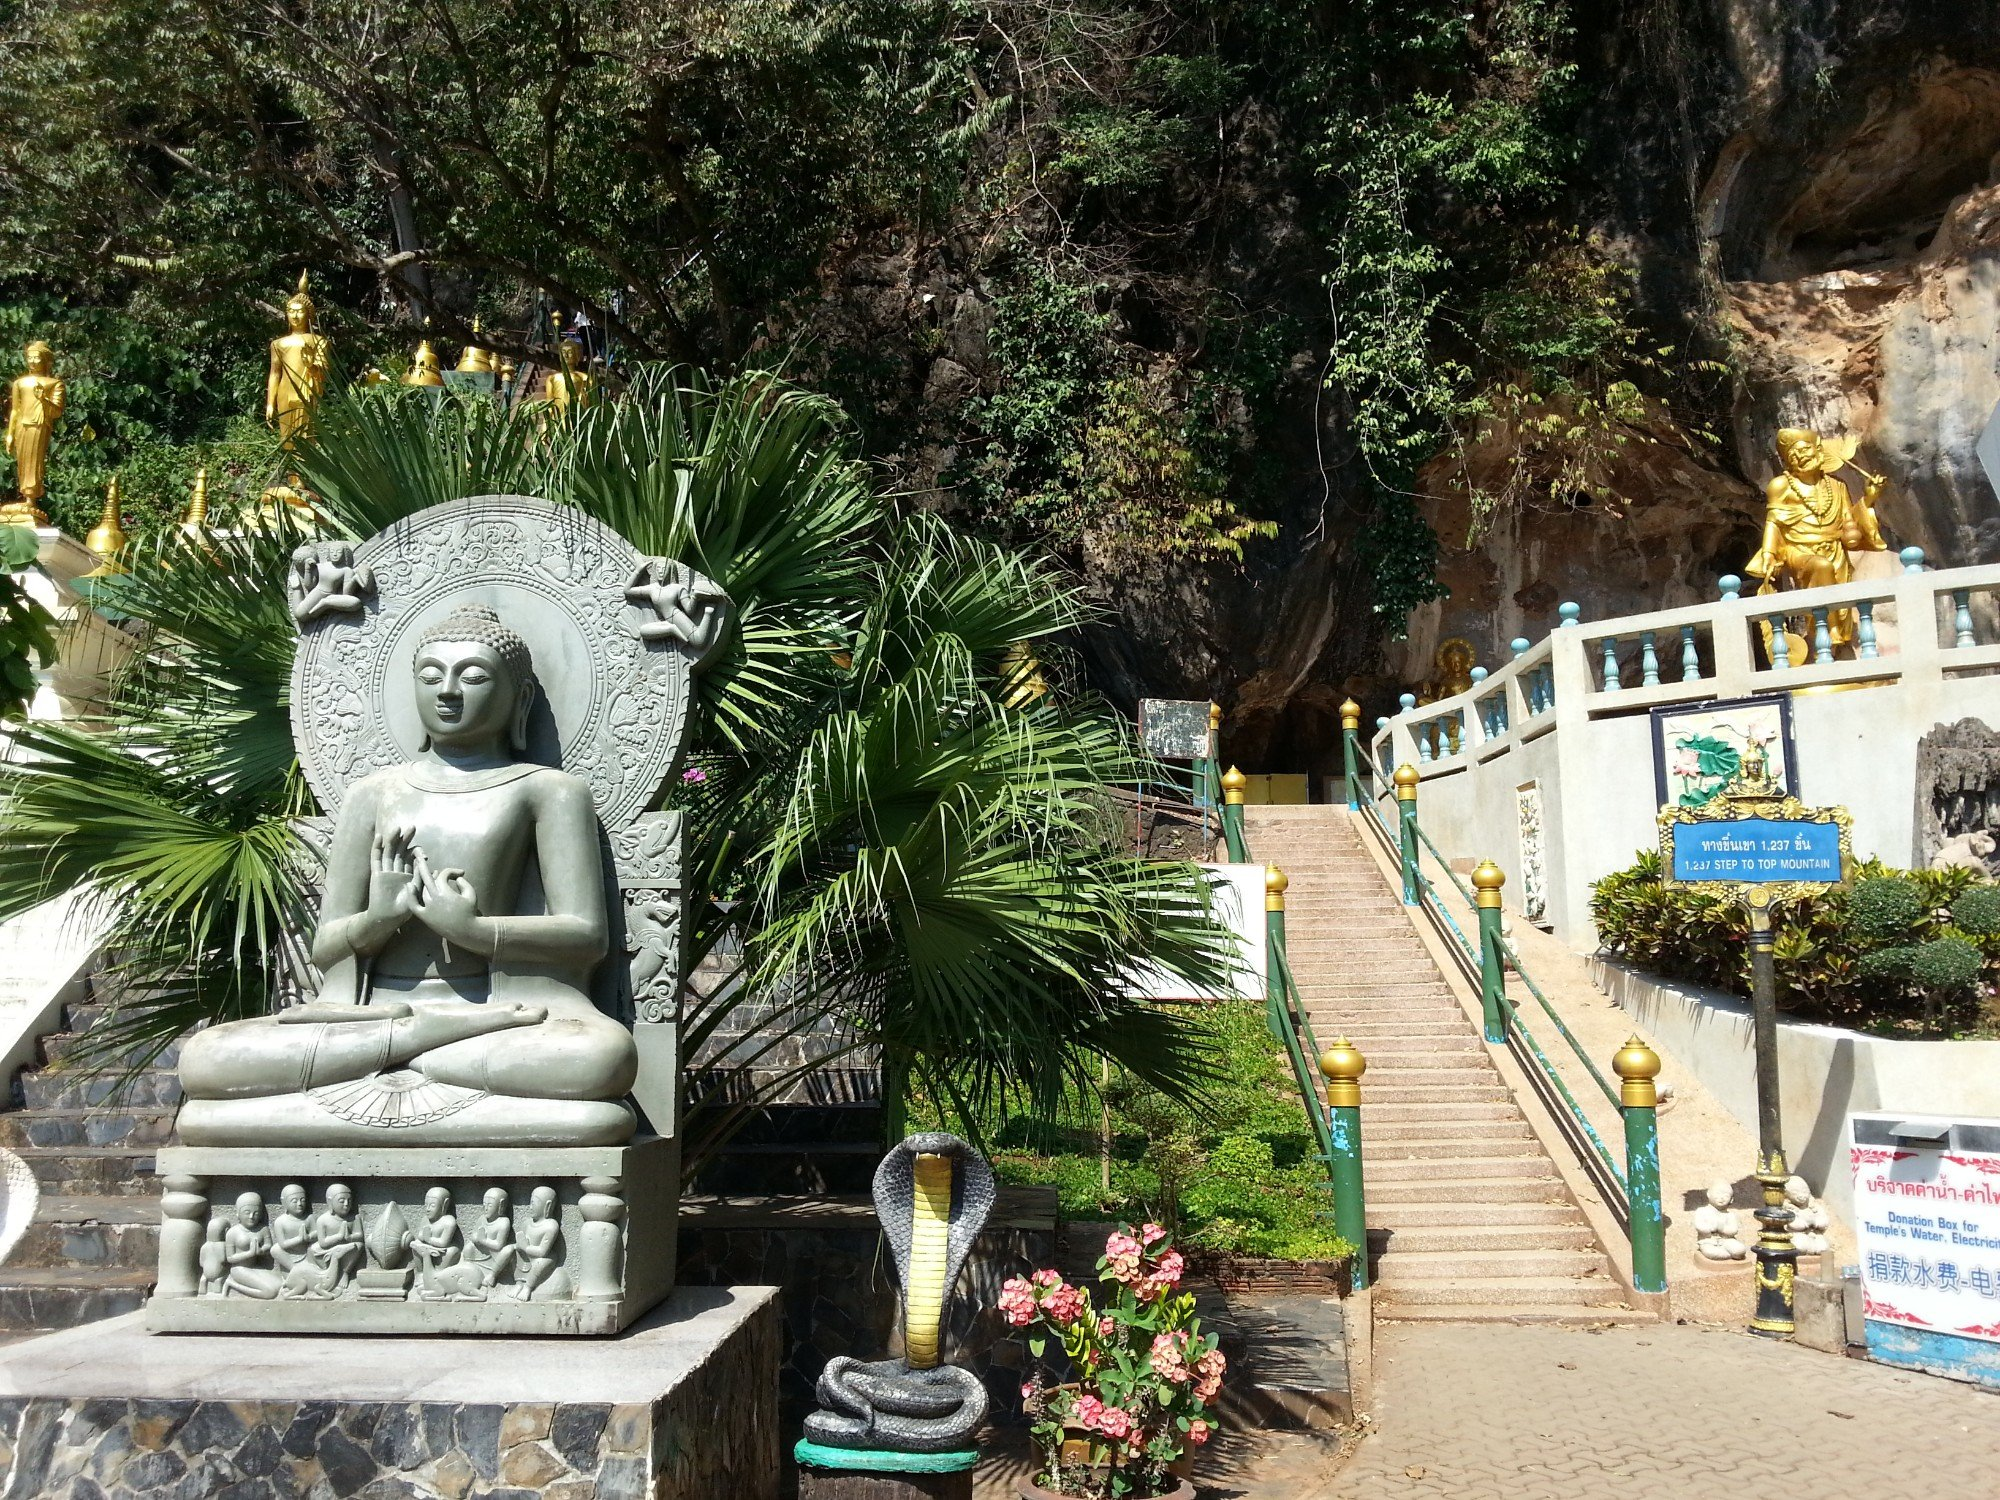 Start of the walk to the mountain top at Wat Tham Suea